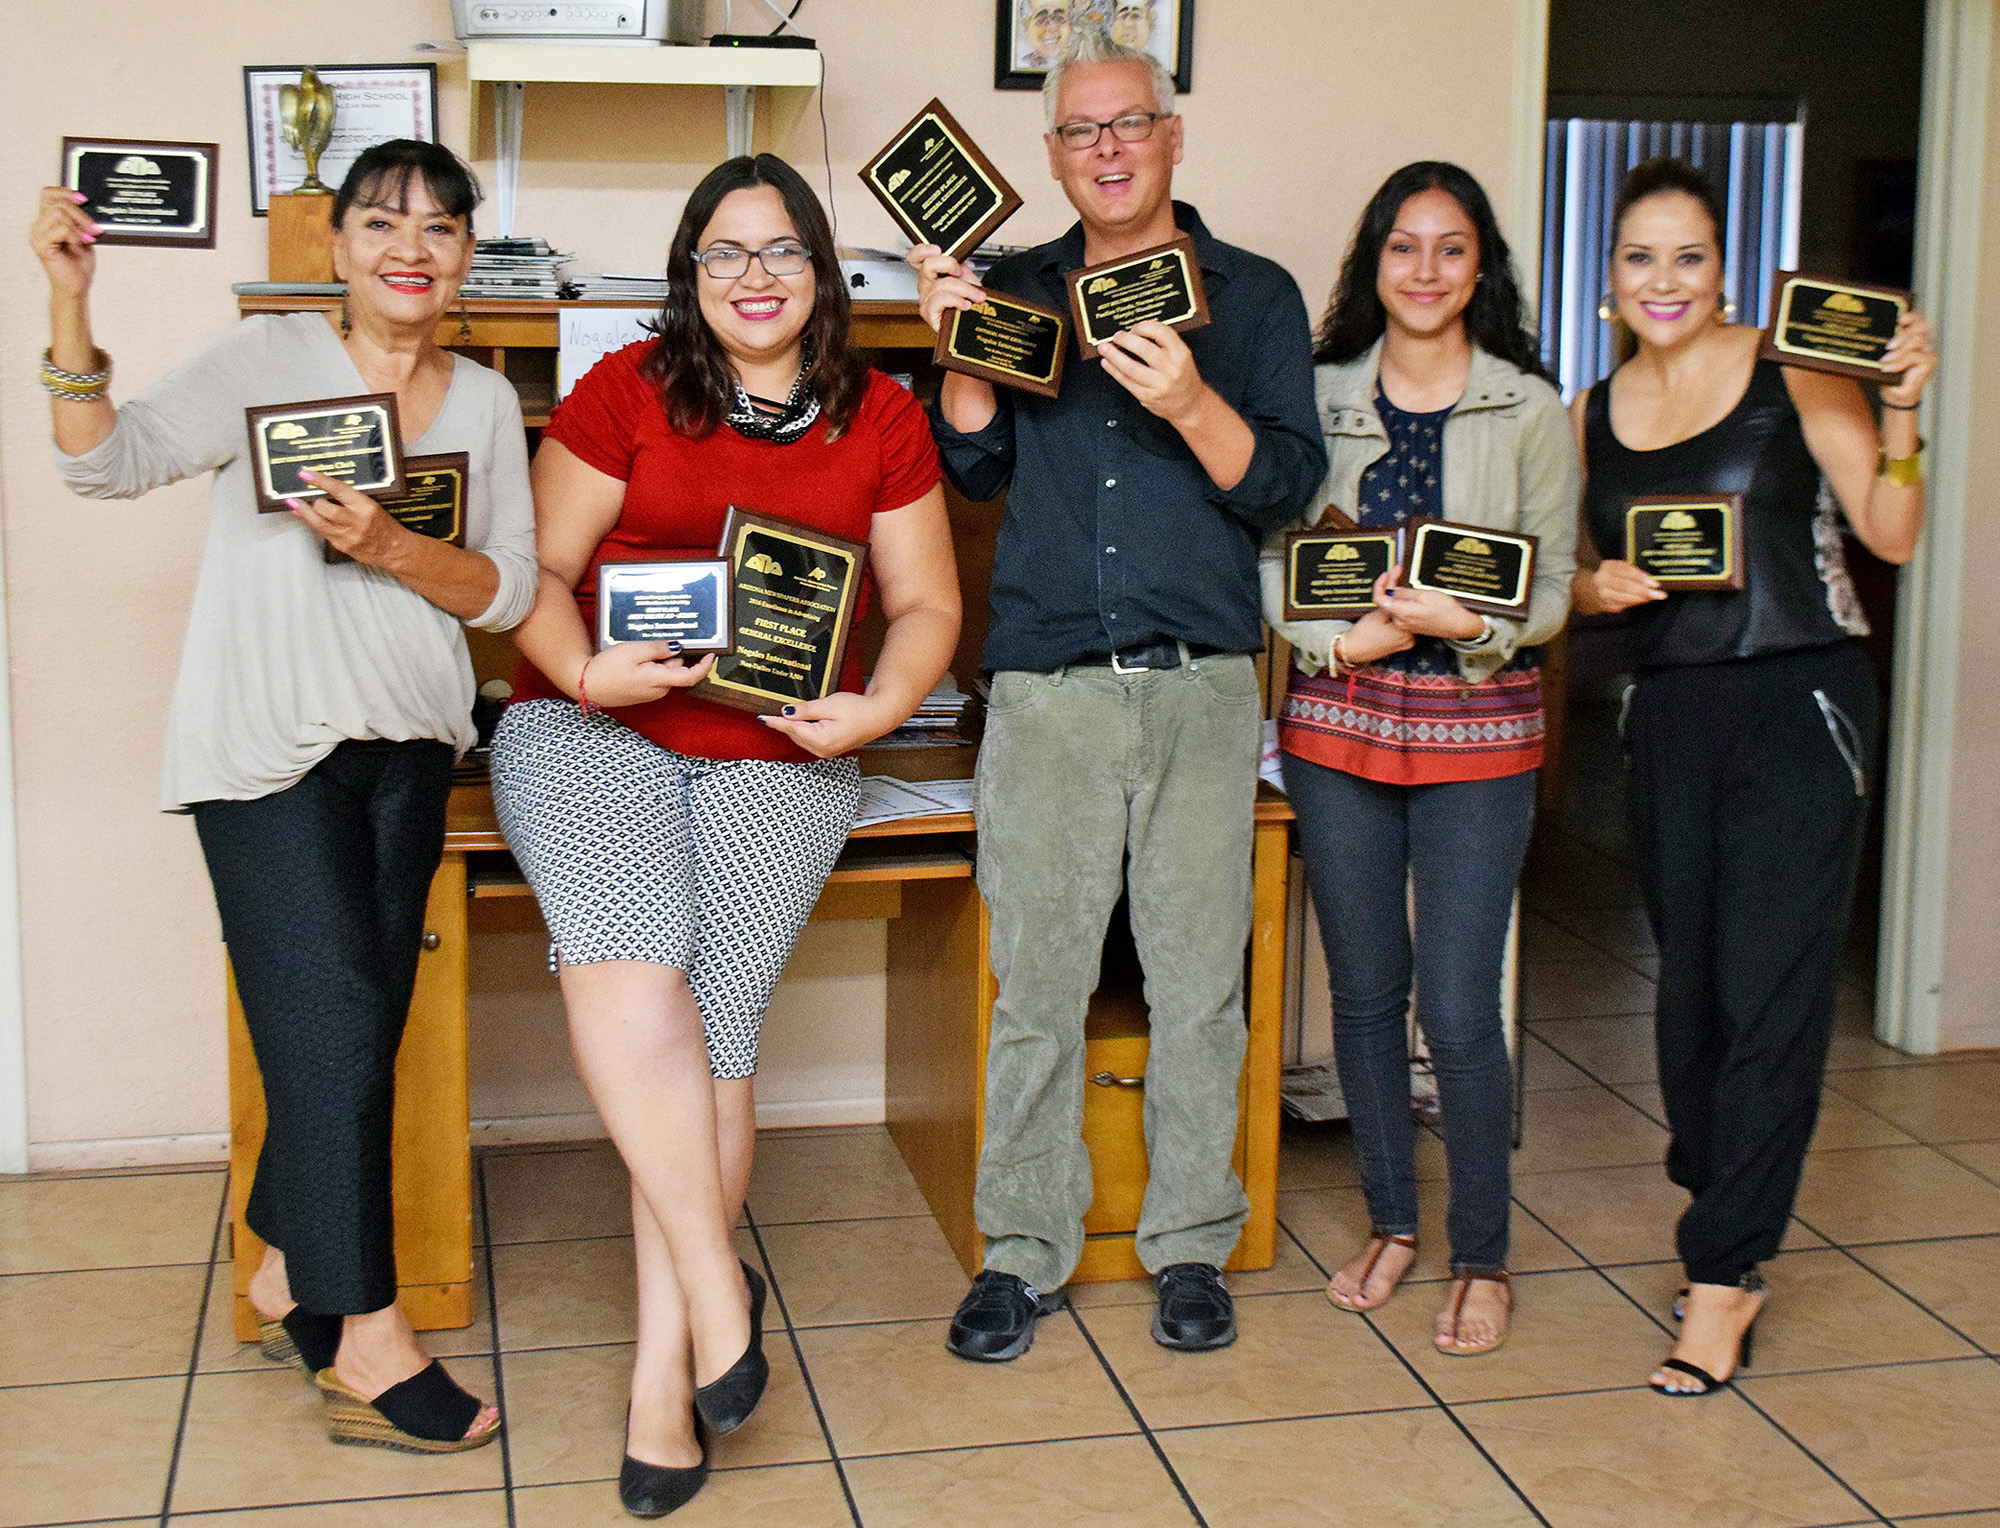 The Nogales International was recognized for excellence in editorial content, design and advertising at the 2016 Arizona Newspapers Association awards ceremony. From left: Advertising representative Marilla Castillo, graphic designer Priscilla Bolanos, managing editor Jonathan Clark, reporter Paulina Pineda and advertising representative Carmen Ibarra.